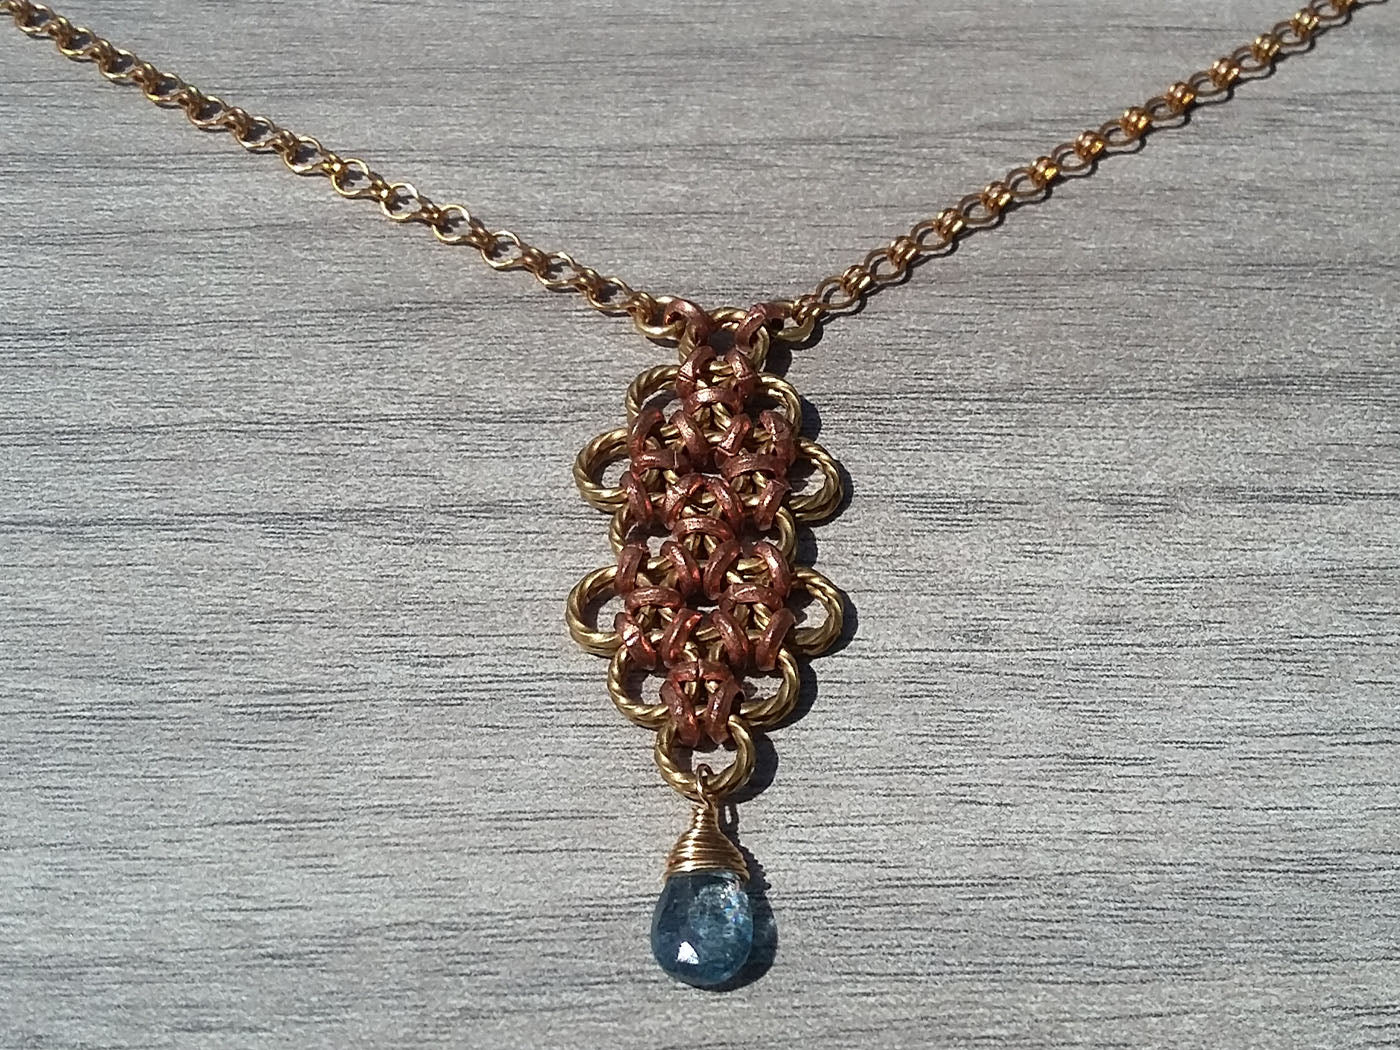 Brass & Copper Blue, Zircon Long Pendant Necklace - crystalsbysabeads.com